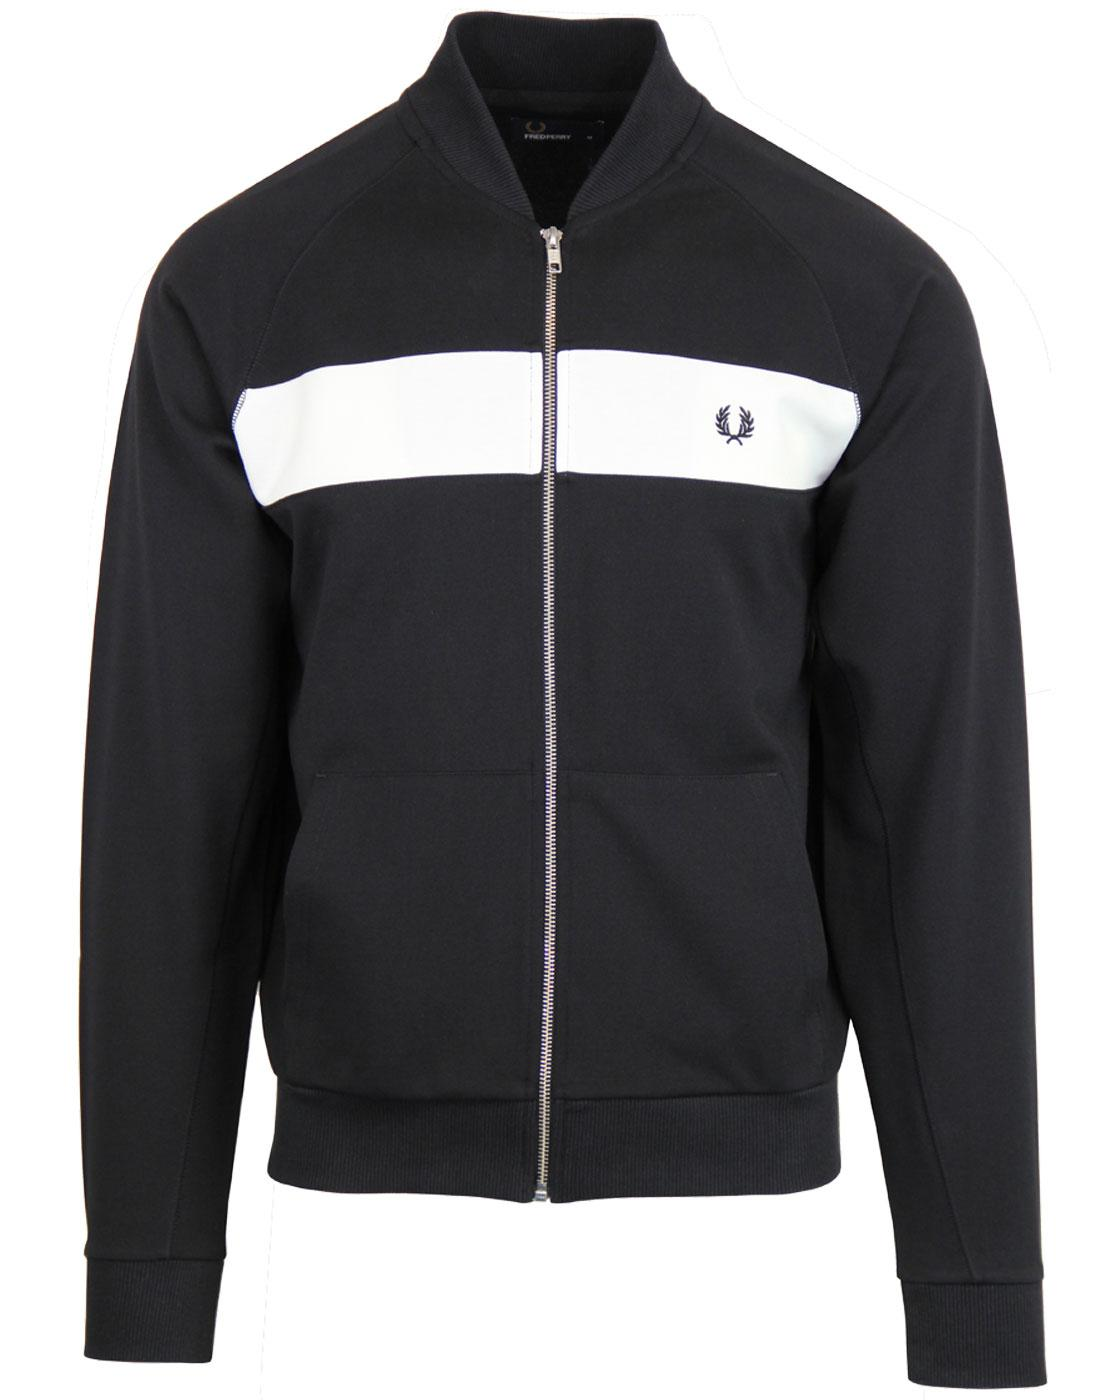 J3528 Fred Perry reverse tricot track jacket black